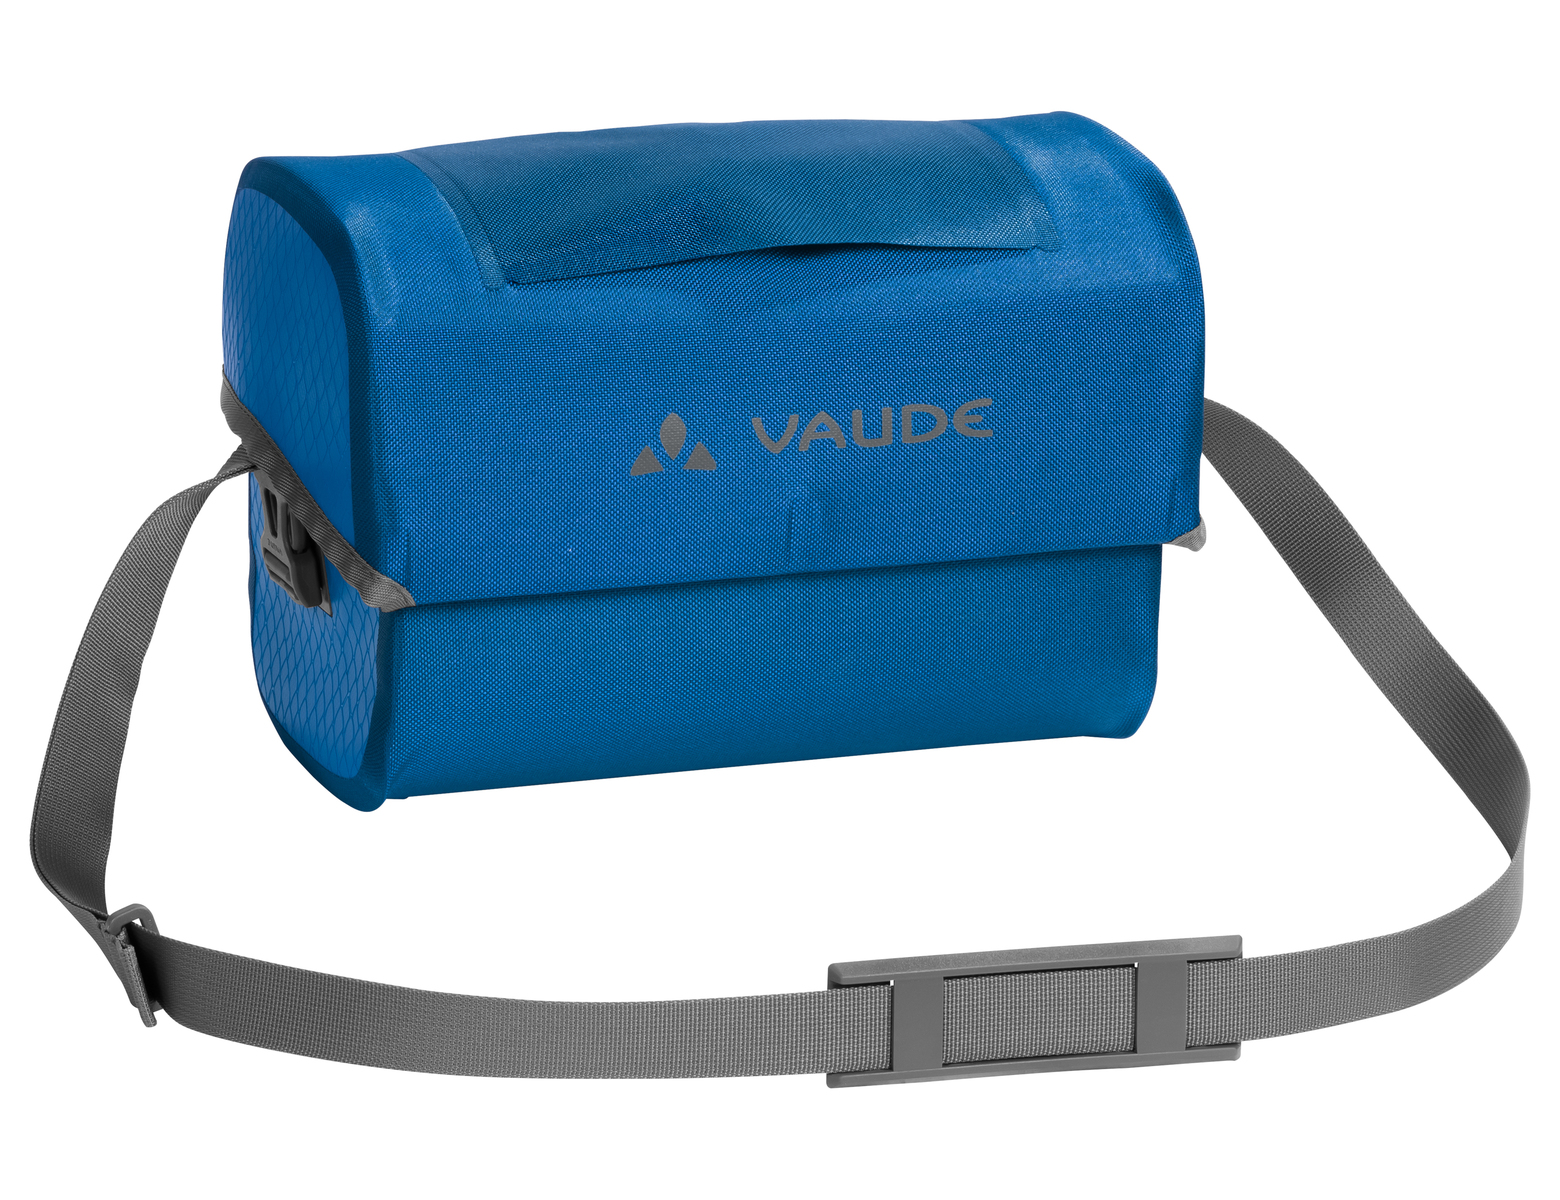 VAUDE Aqua Box blue  - VAUDE Aqua Box blue